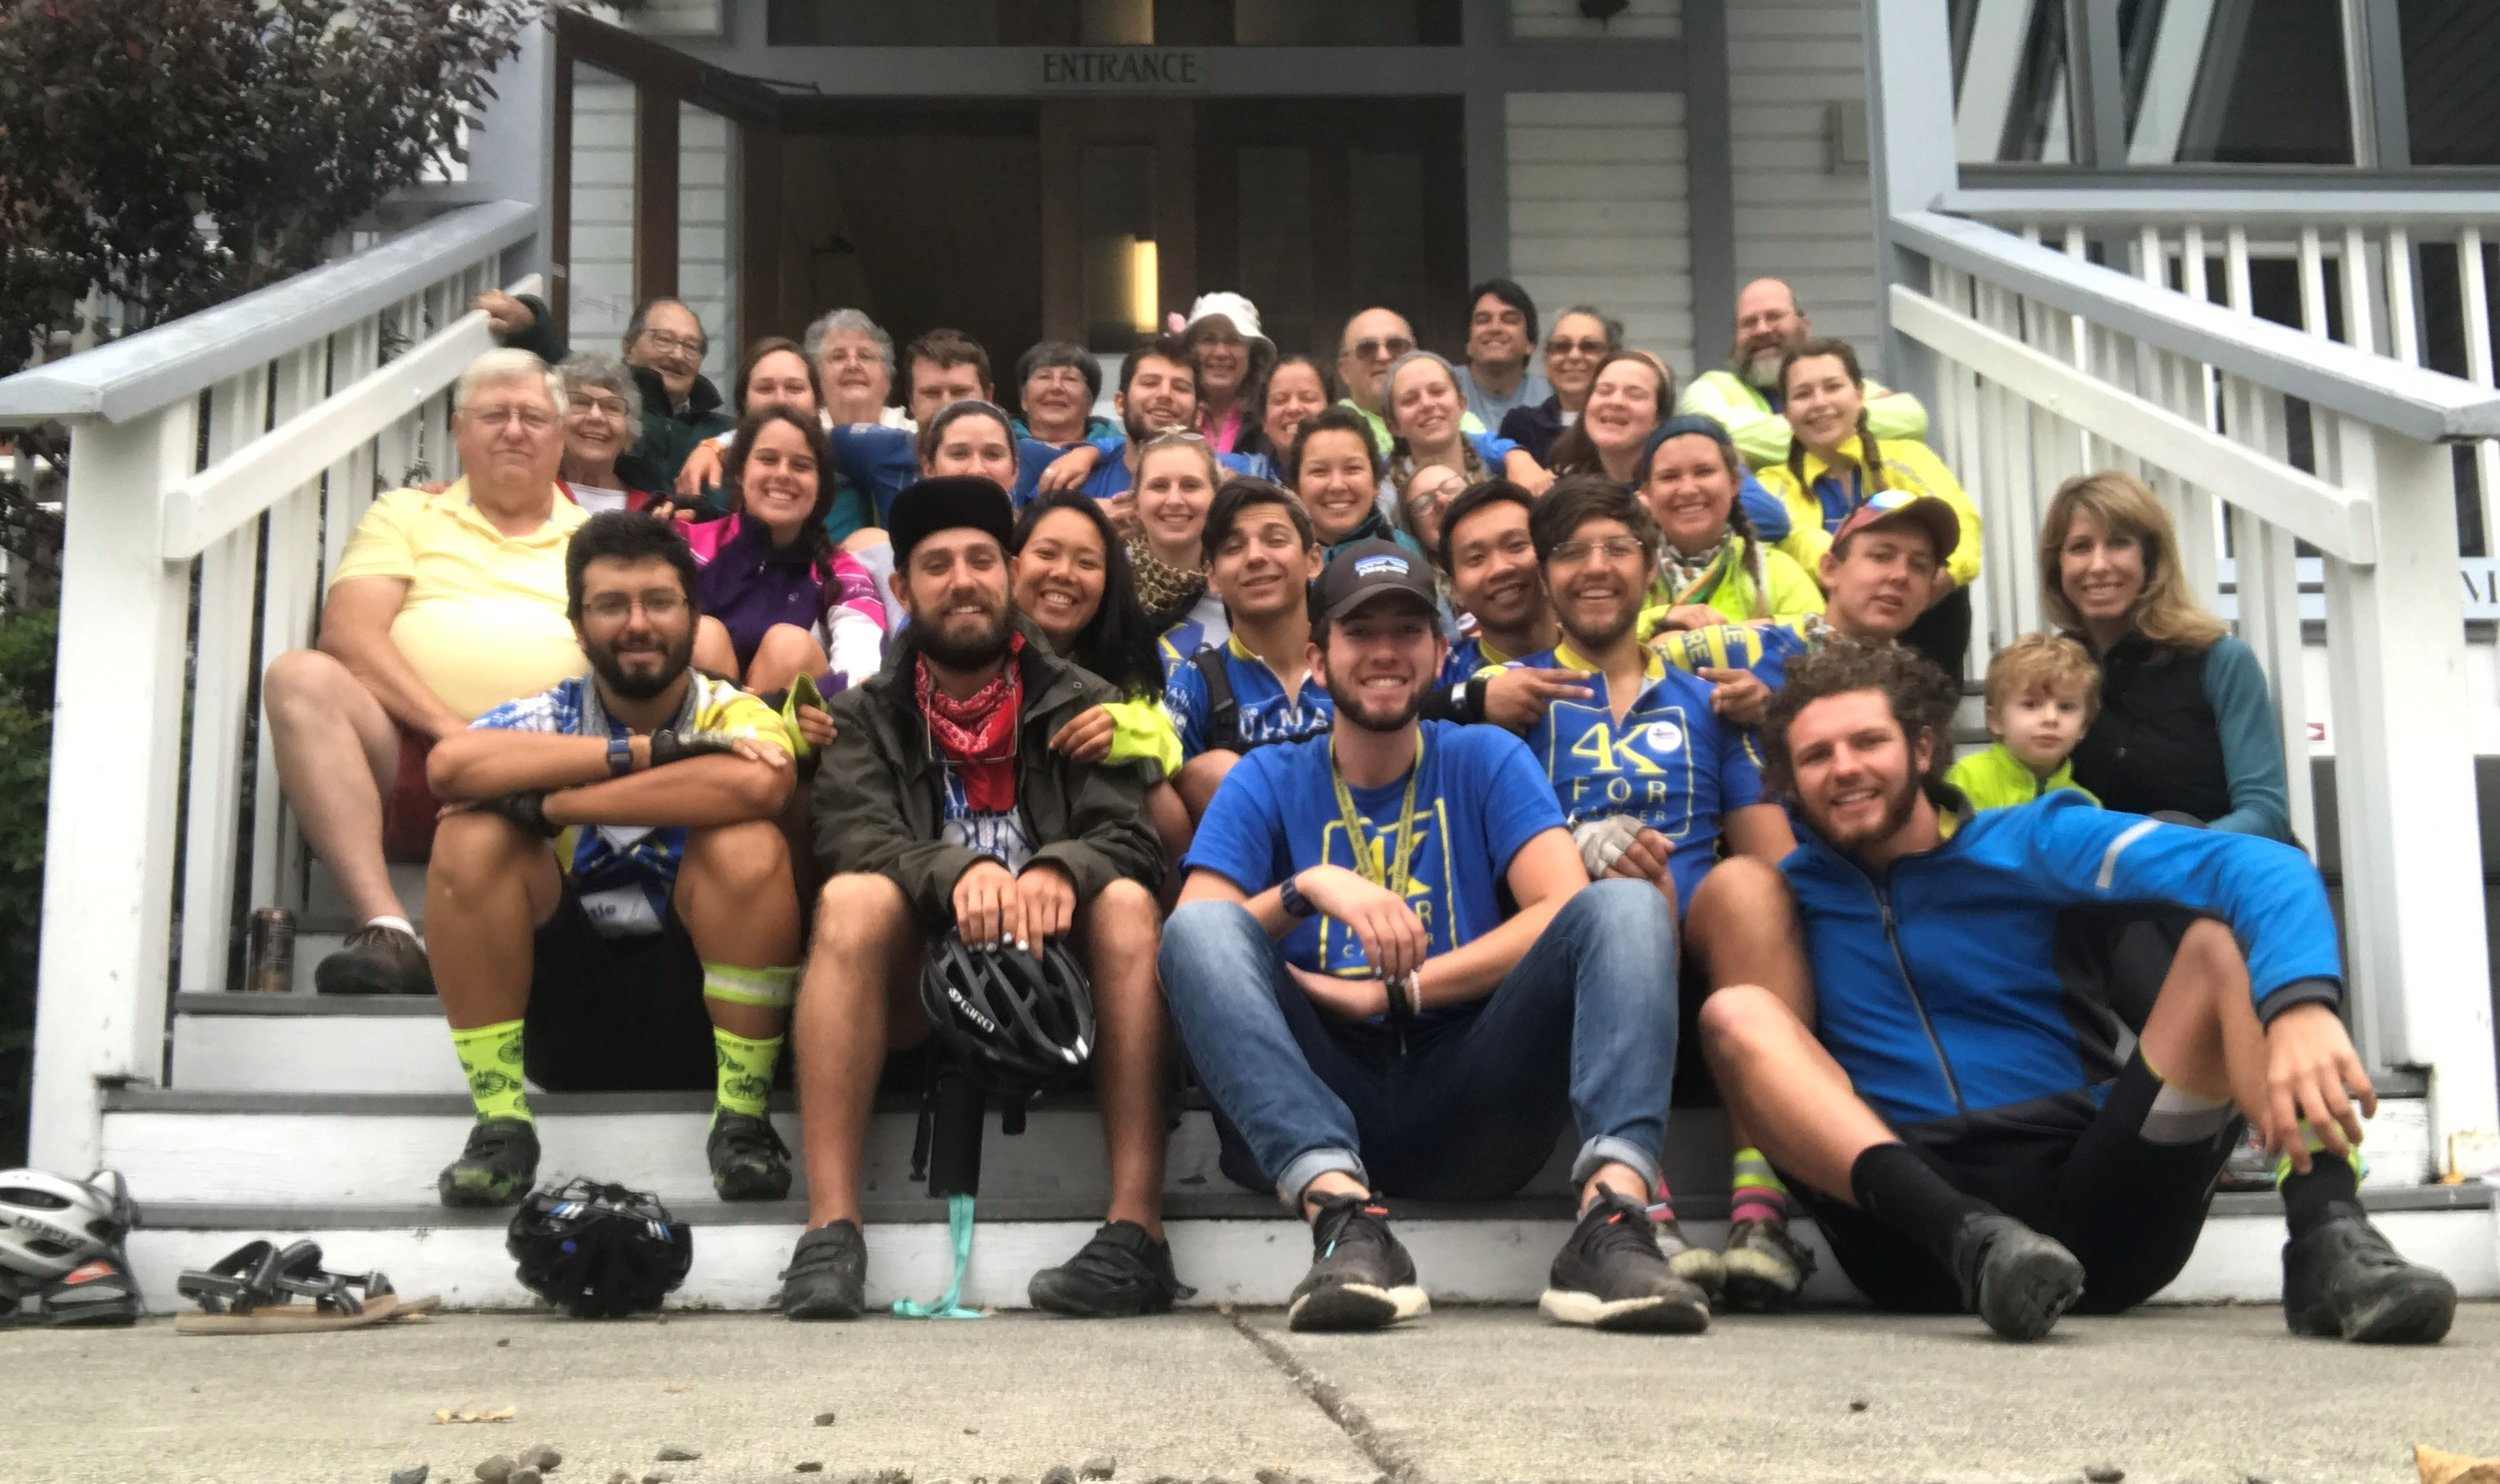 Hosting 4K for Cancer Riders in 2017